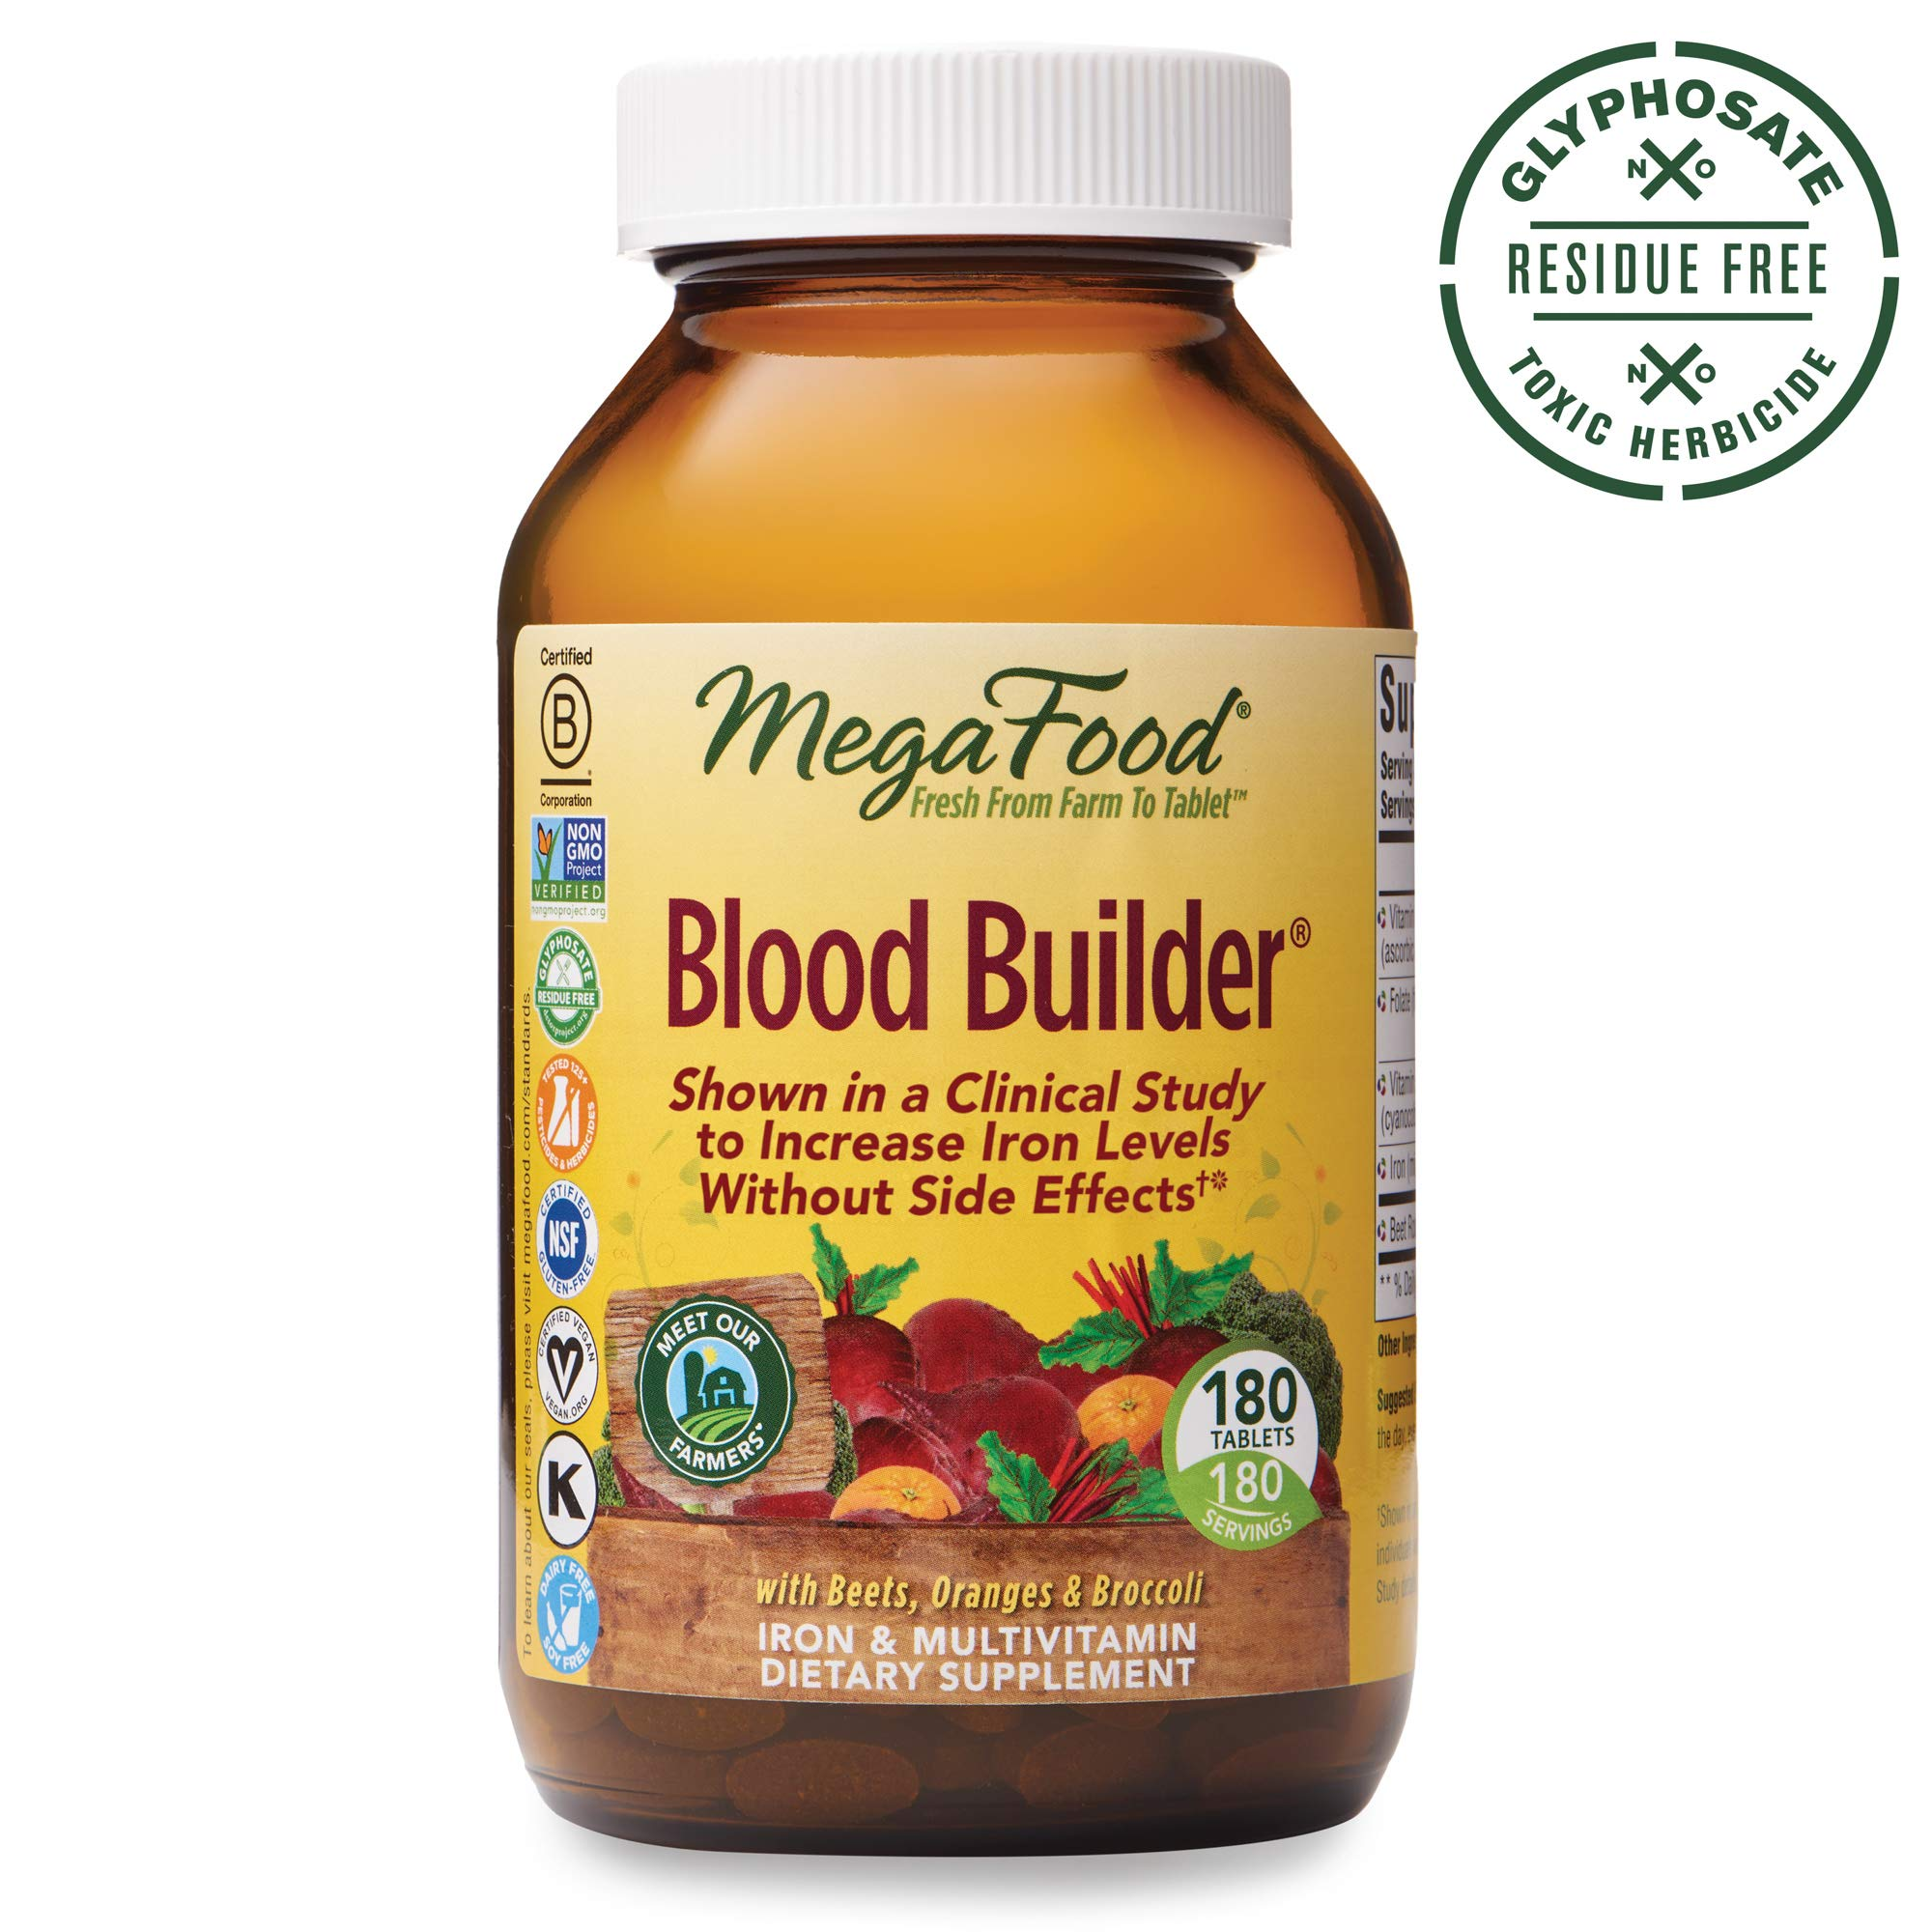 MegaFood, Blood Builder, Daily Iron Supplement and Multivitamin, Supports Energy and Red Blood Cell Production Without Nausea or Constipation, Gluten-Free, Vegan, 180 tablets (180 servings) by MegaFood